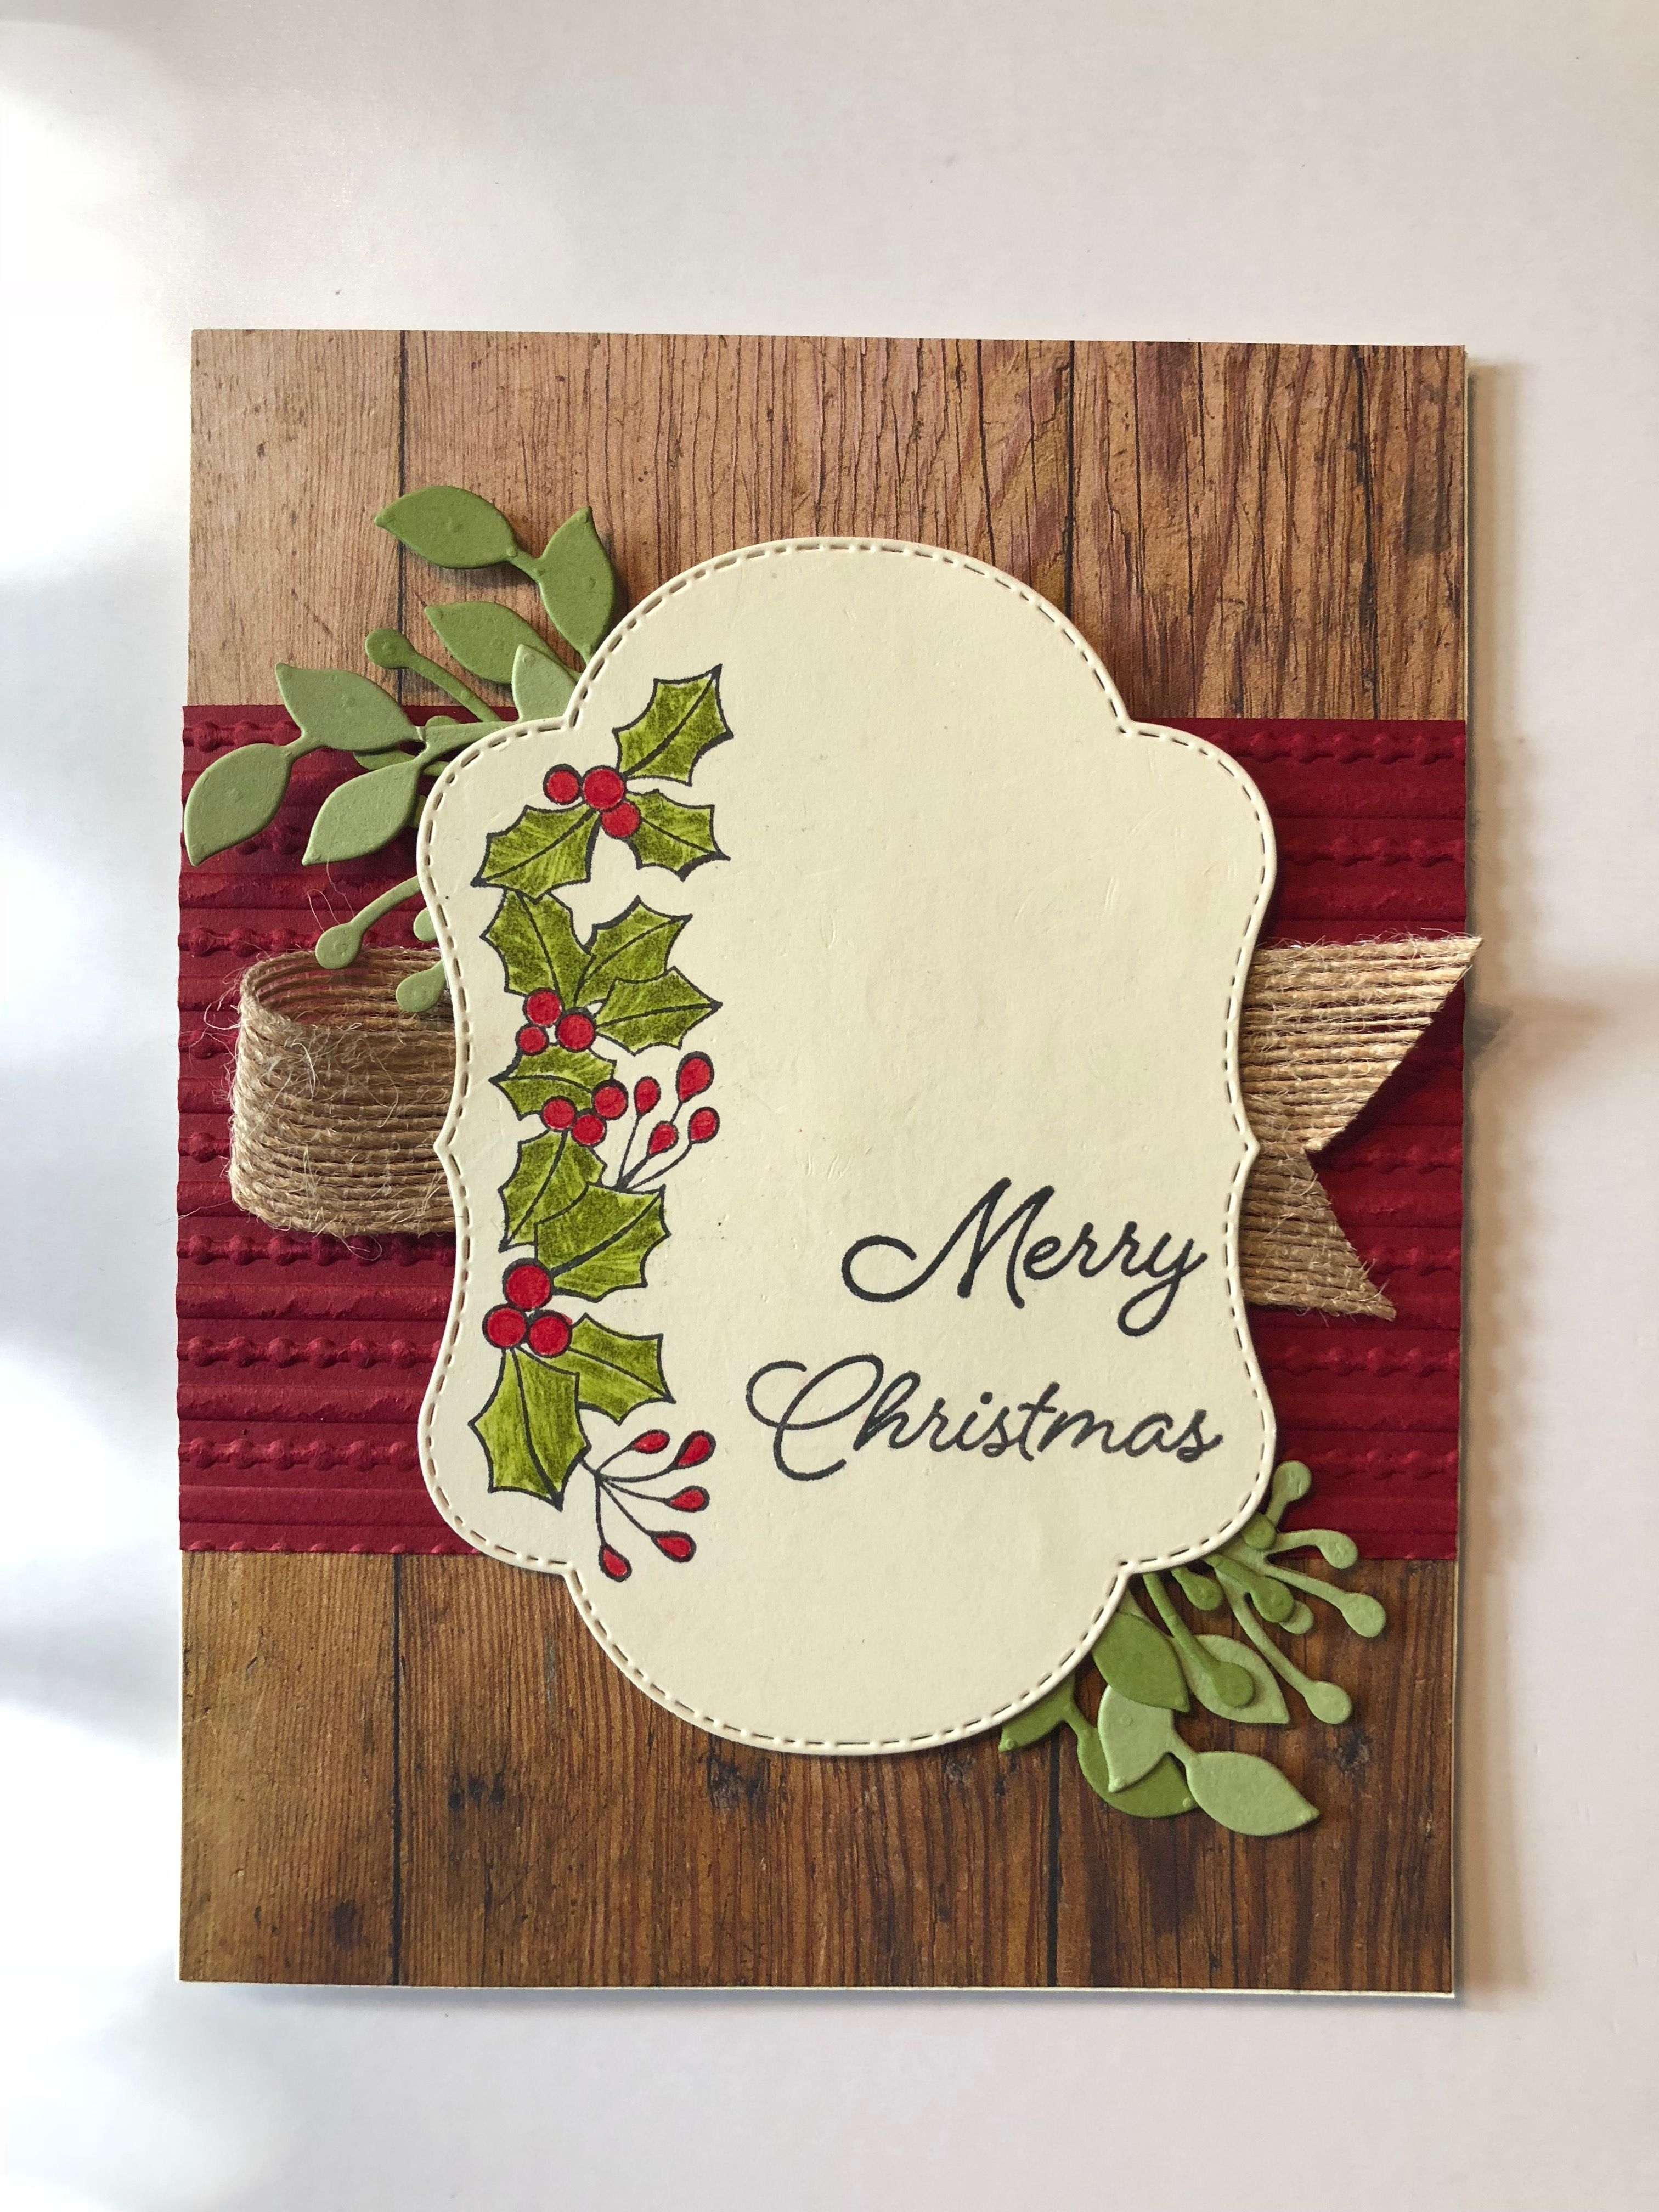 Stampin Up Blended Seasons | Stamping Ideas | Pinterest | Christmas ...